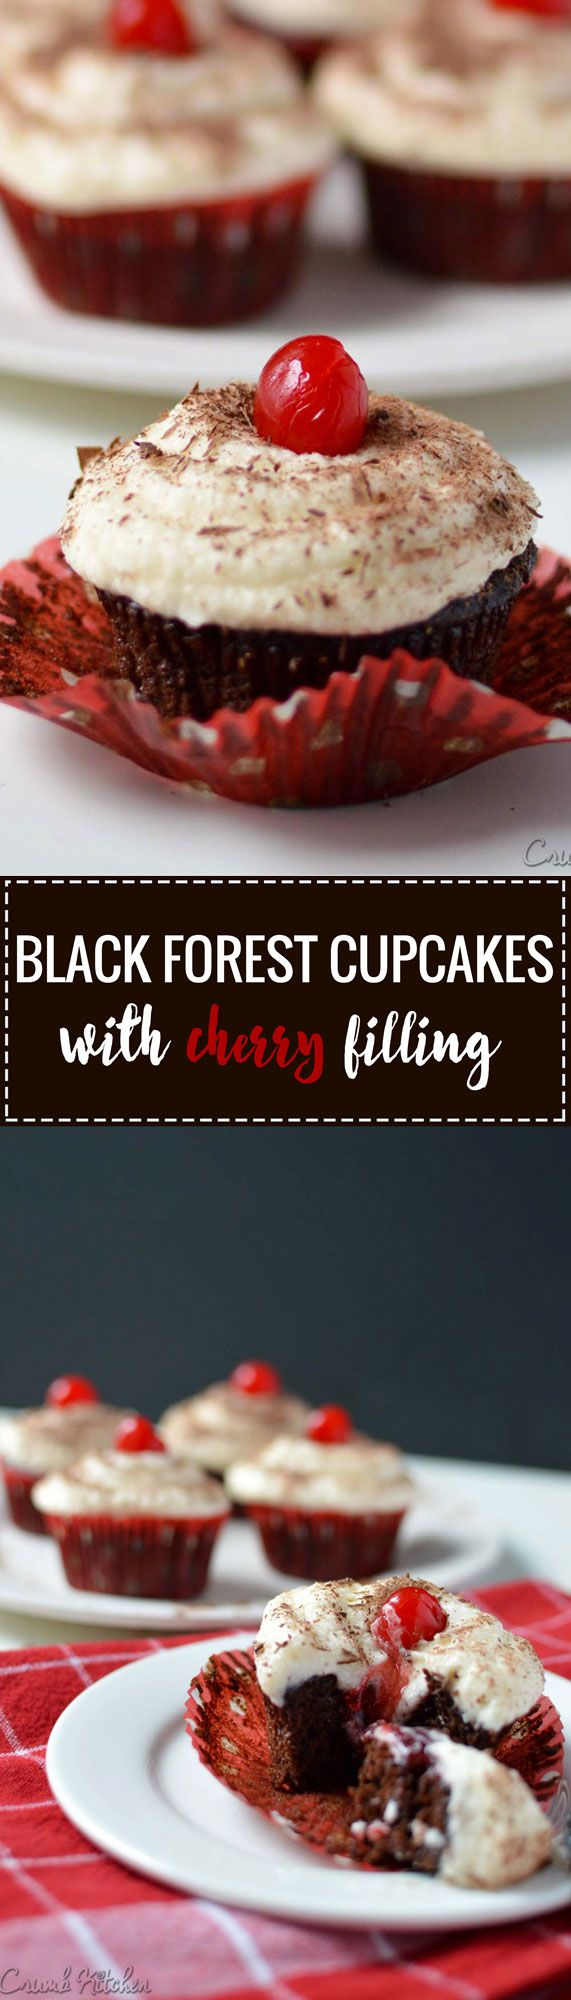 This classic cake is re-imagined in cupcake form with a dark chocolate base, creamy frosting, and a surprise cherry filling middle. | crumbkitchen.com